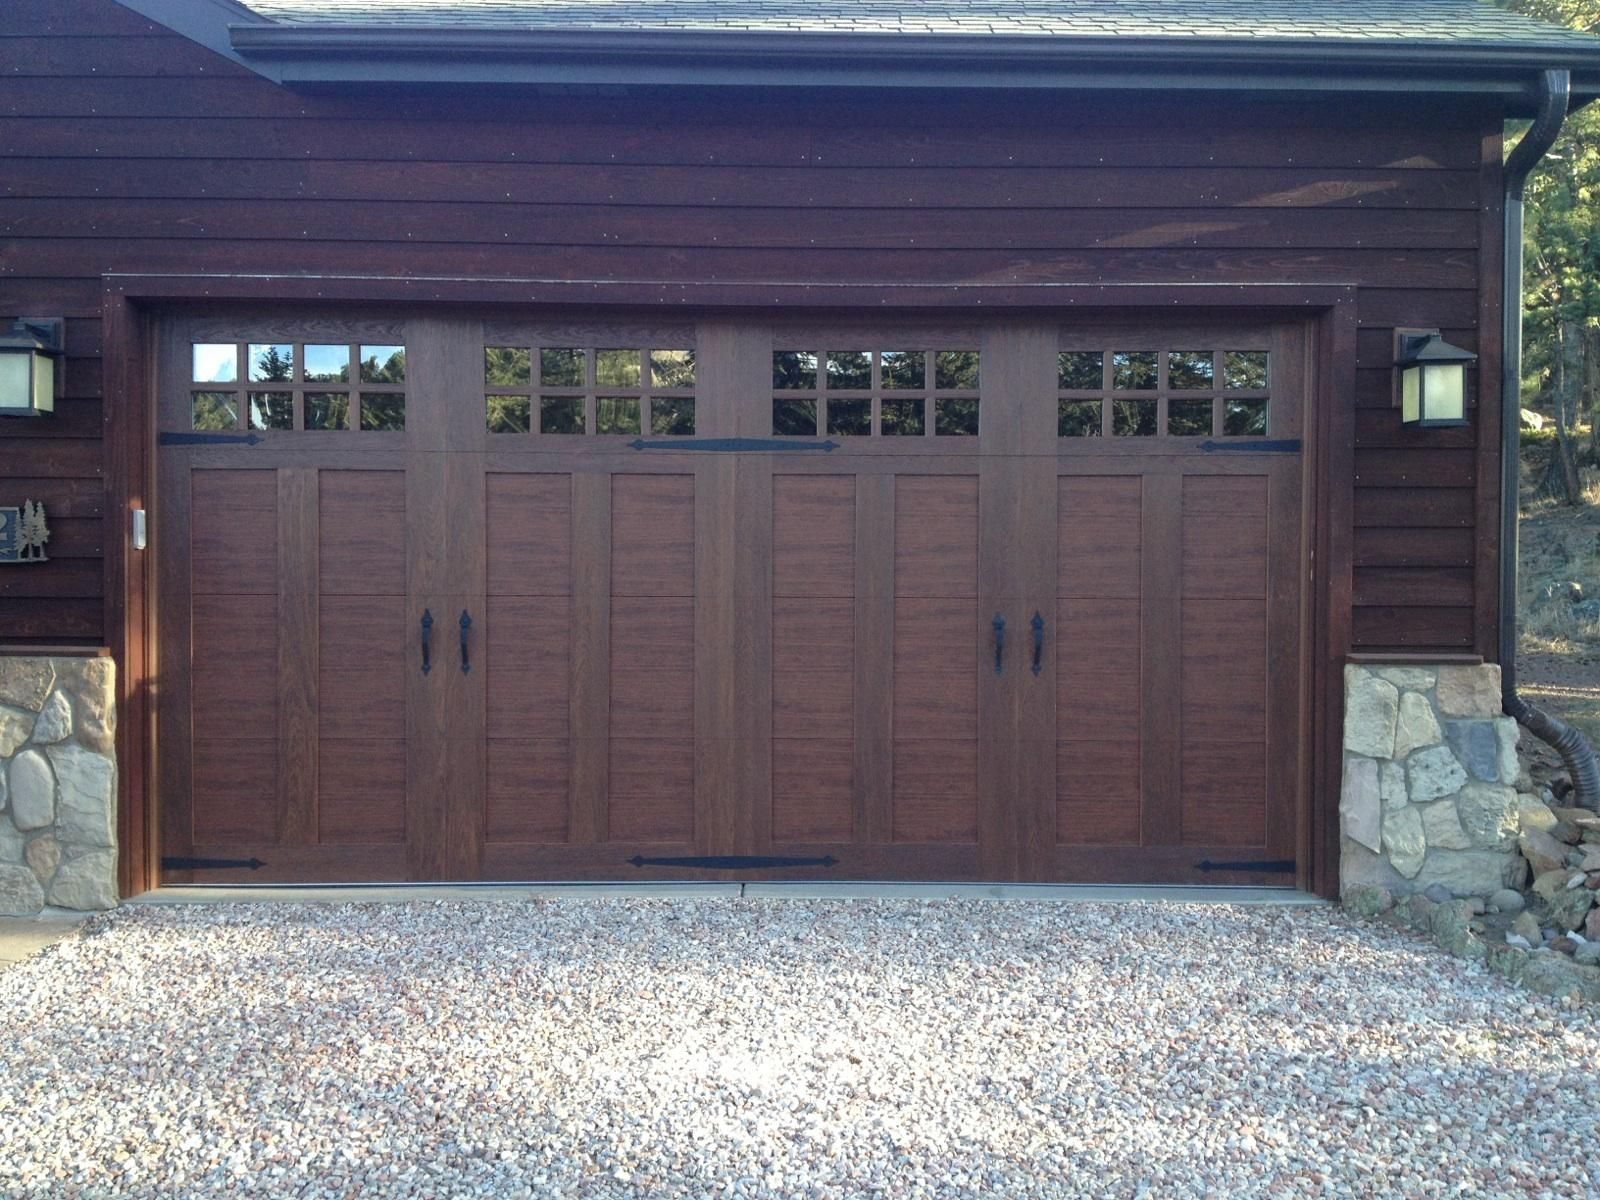 New Install By One Clear Choice Garage Doors Garage Door Installation Garage Door Design